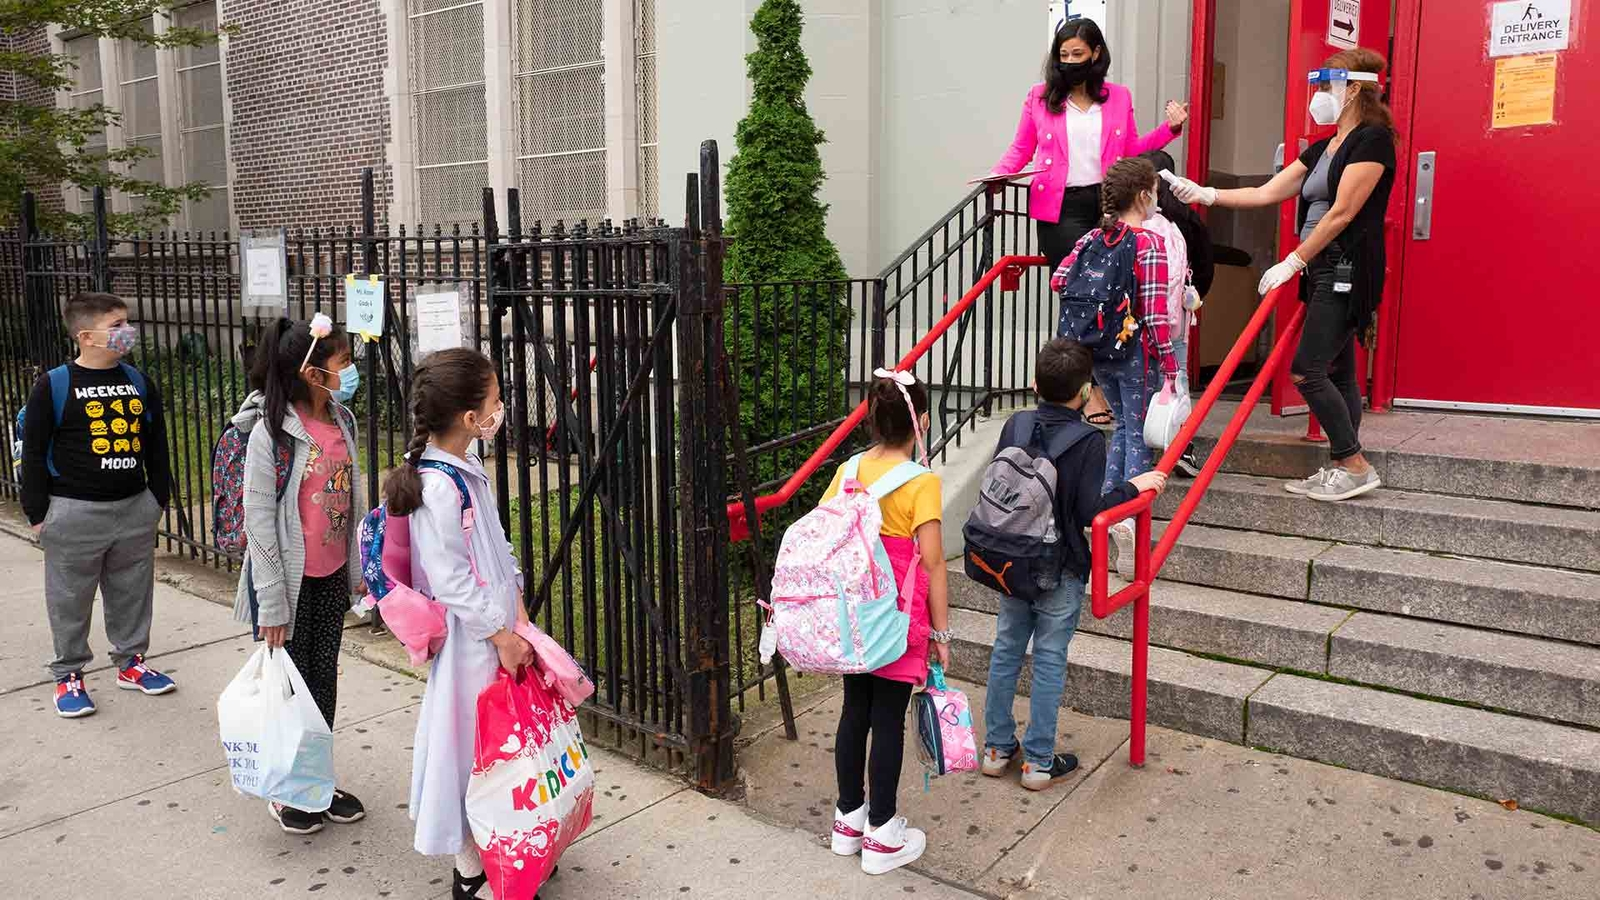 Nyc Schools Calendar 2022.No More Snowy Days On The New York City School Calendar From 2021 To 2022 Florida News Times